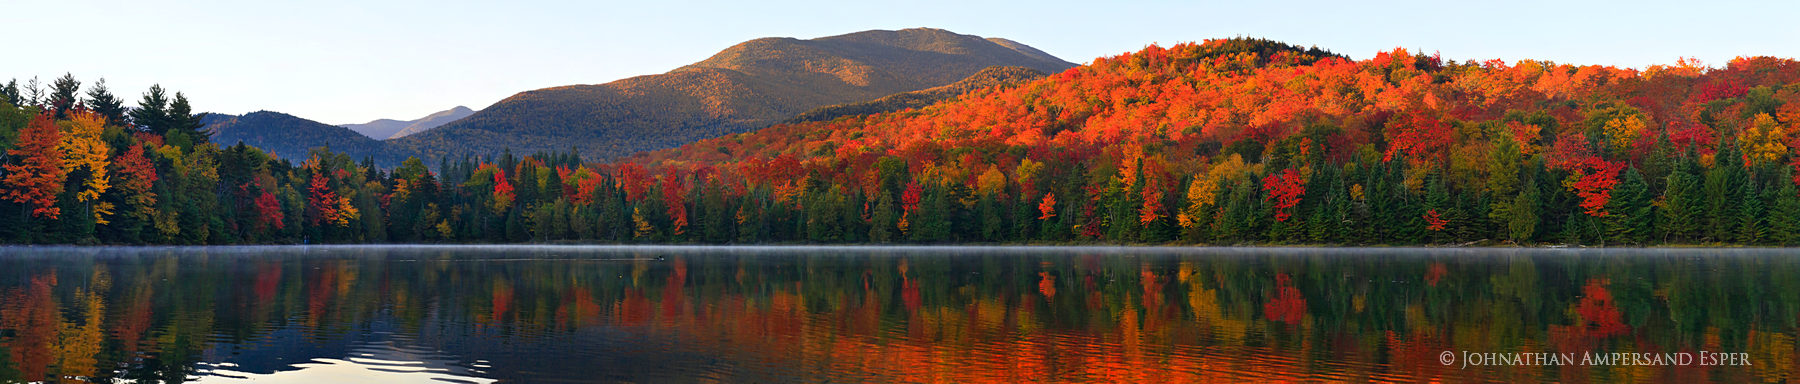 Heart Lake,Algonquin,Heart Lake panorama,loon,Heart Lake loon,sunrise,fall,2014,, photo